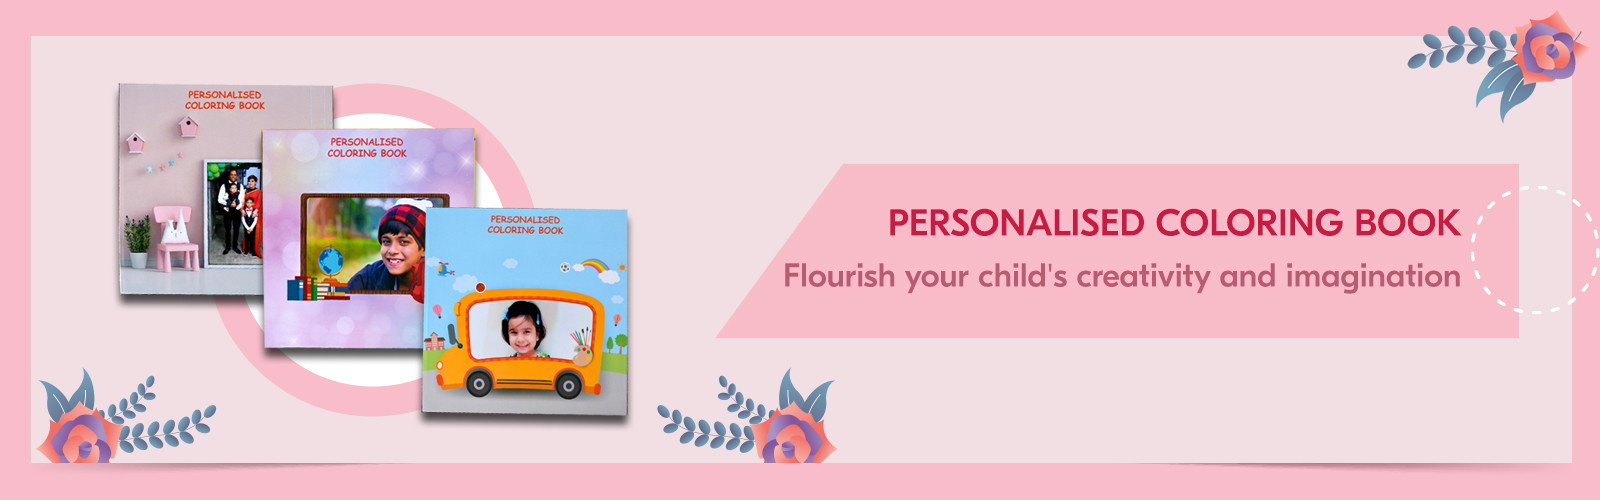 Personalised Coloring Books